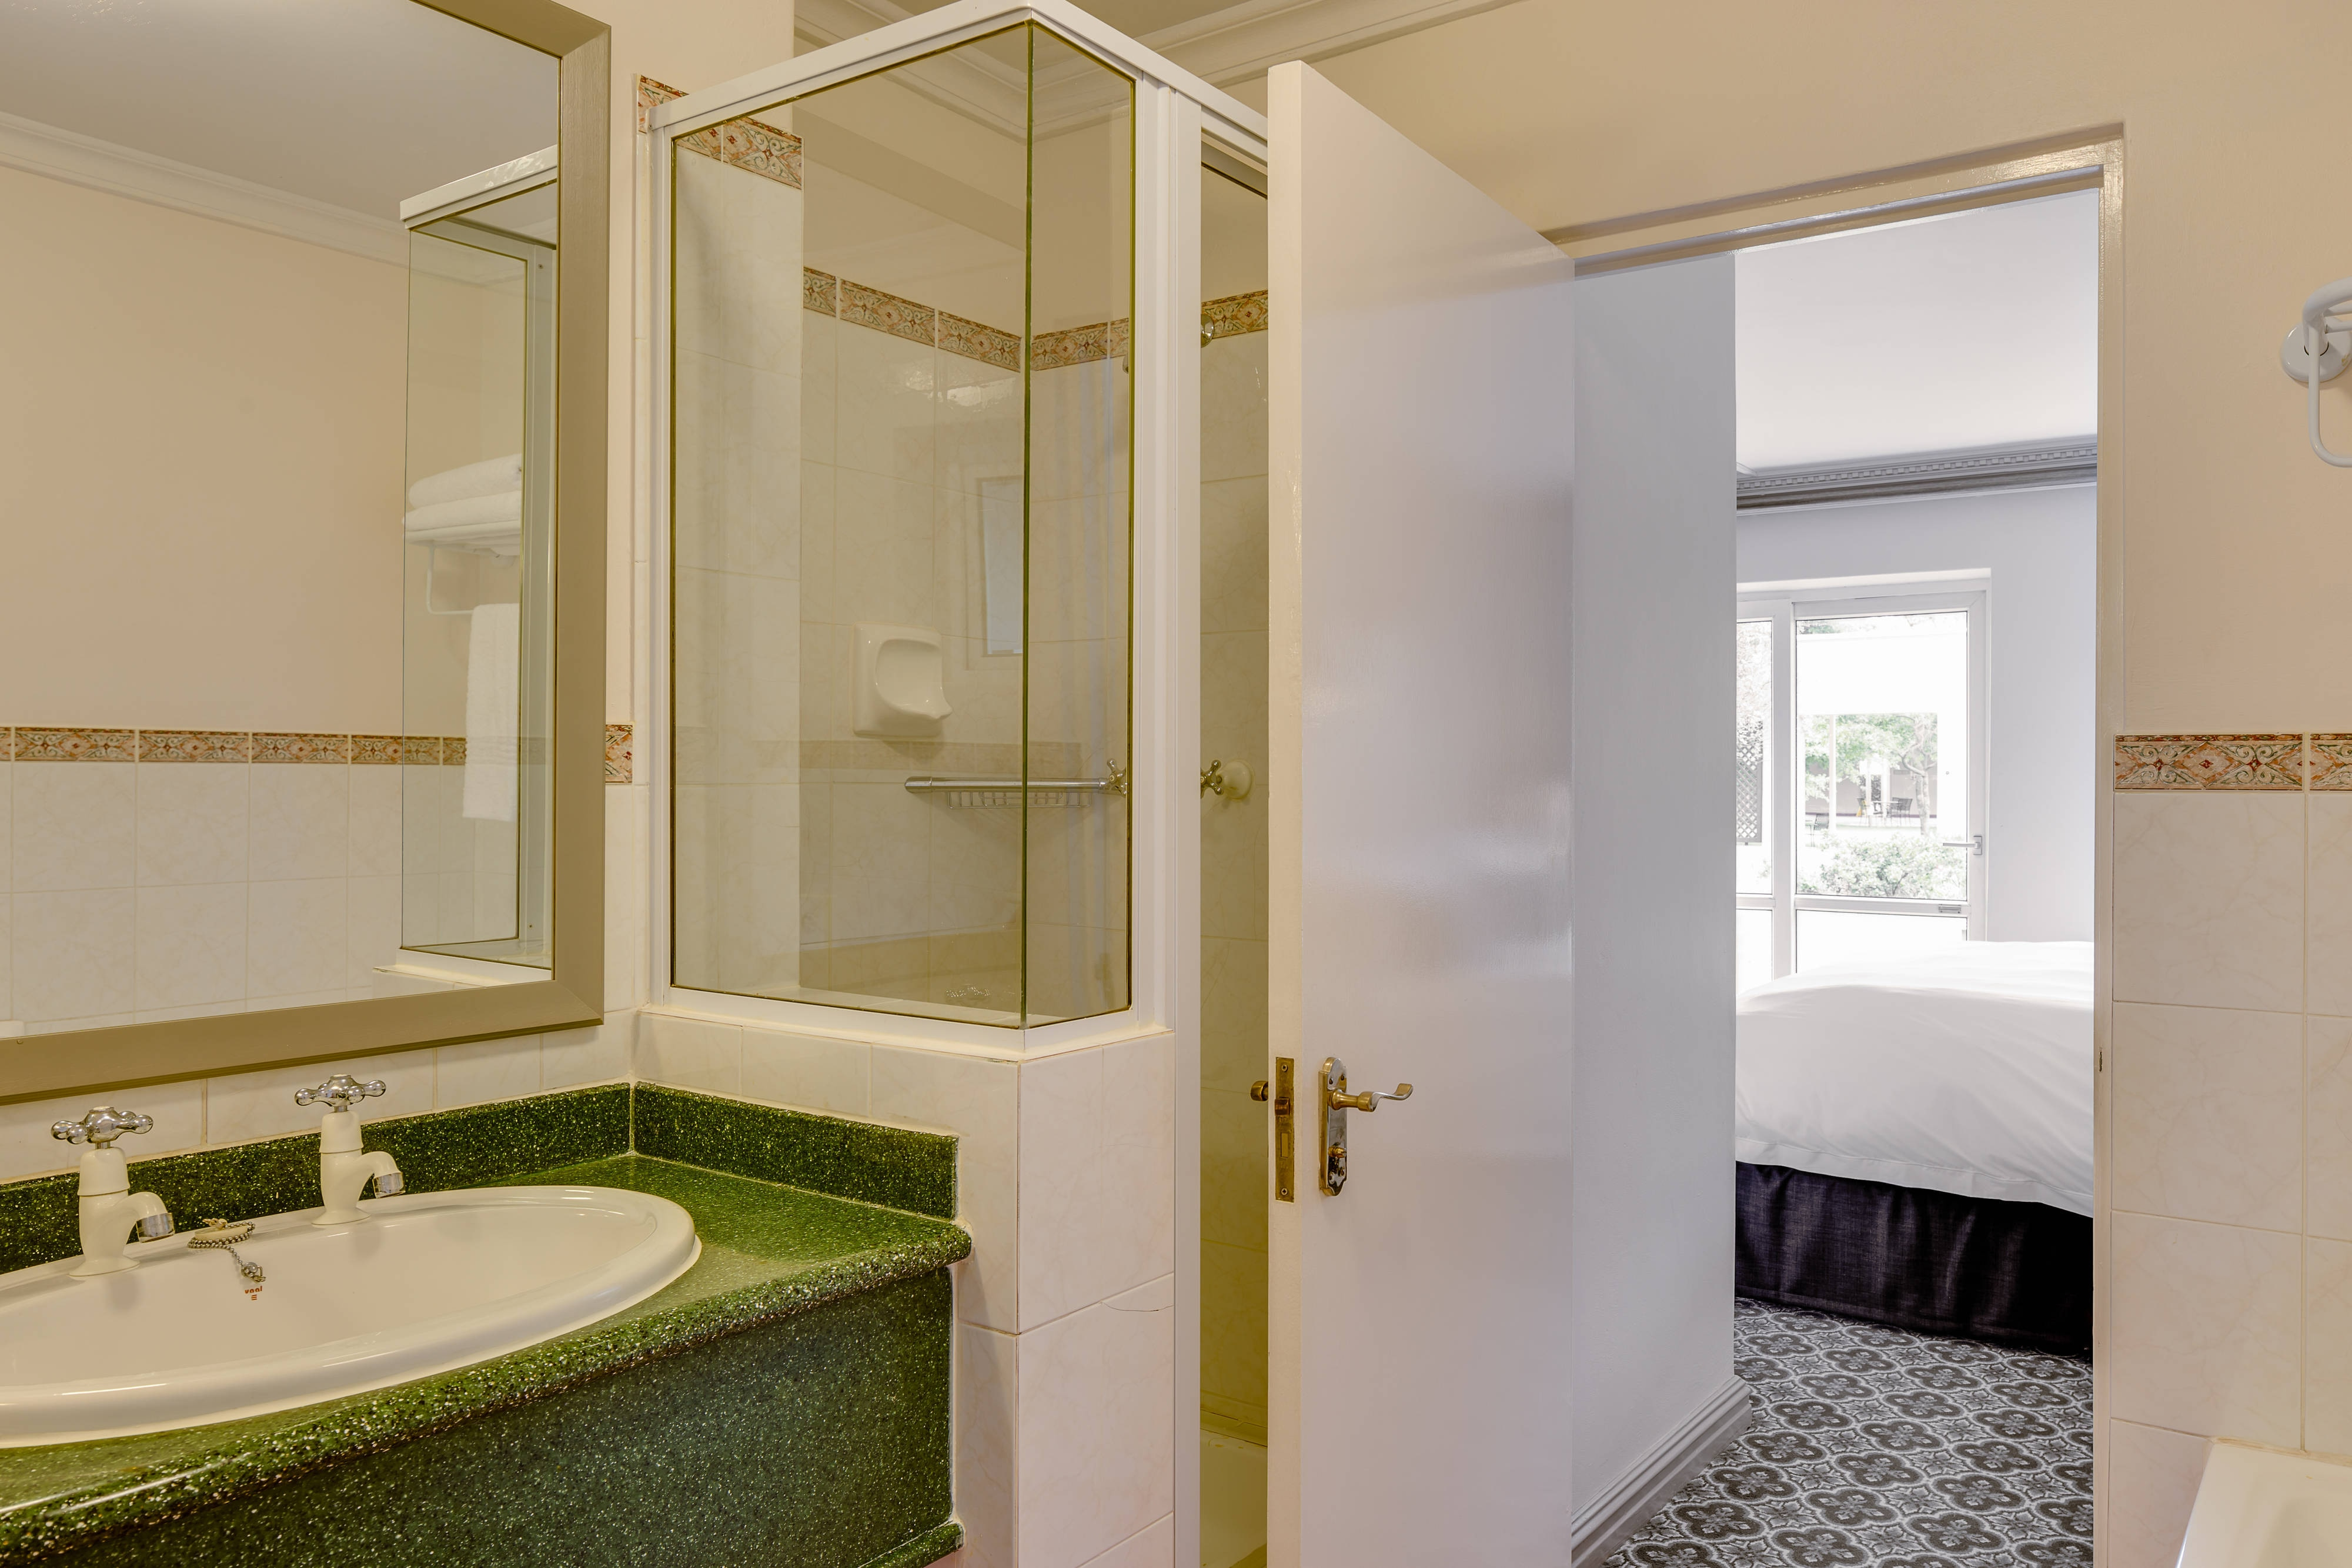 Protea Hotel Mowbray Suite Bathroom